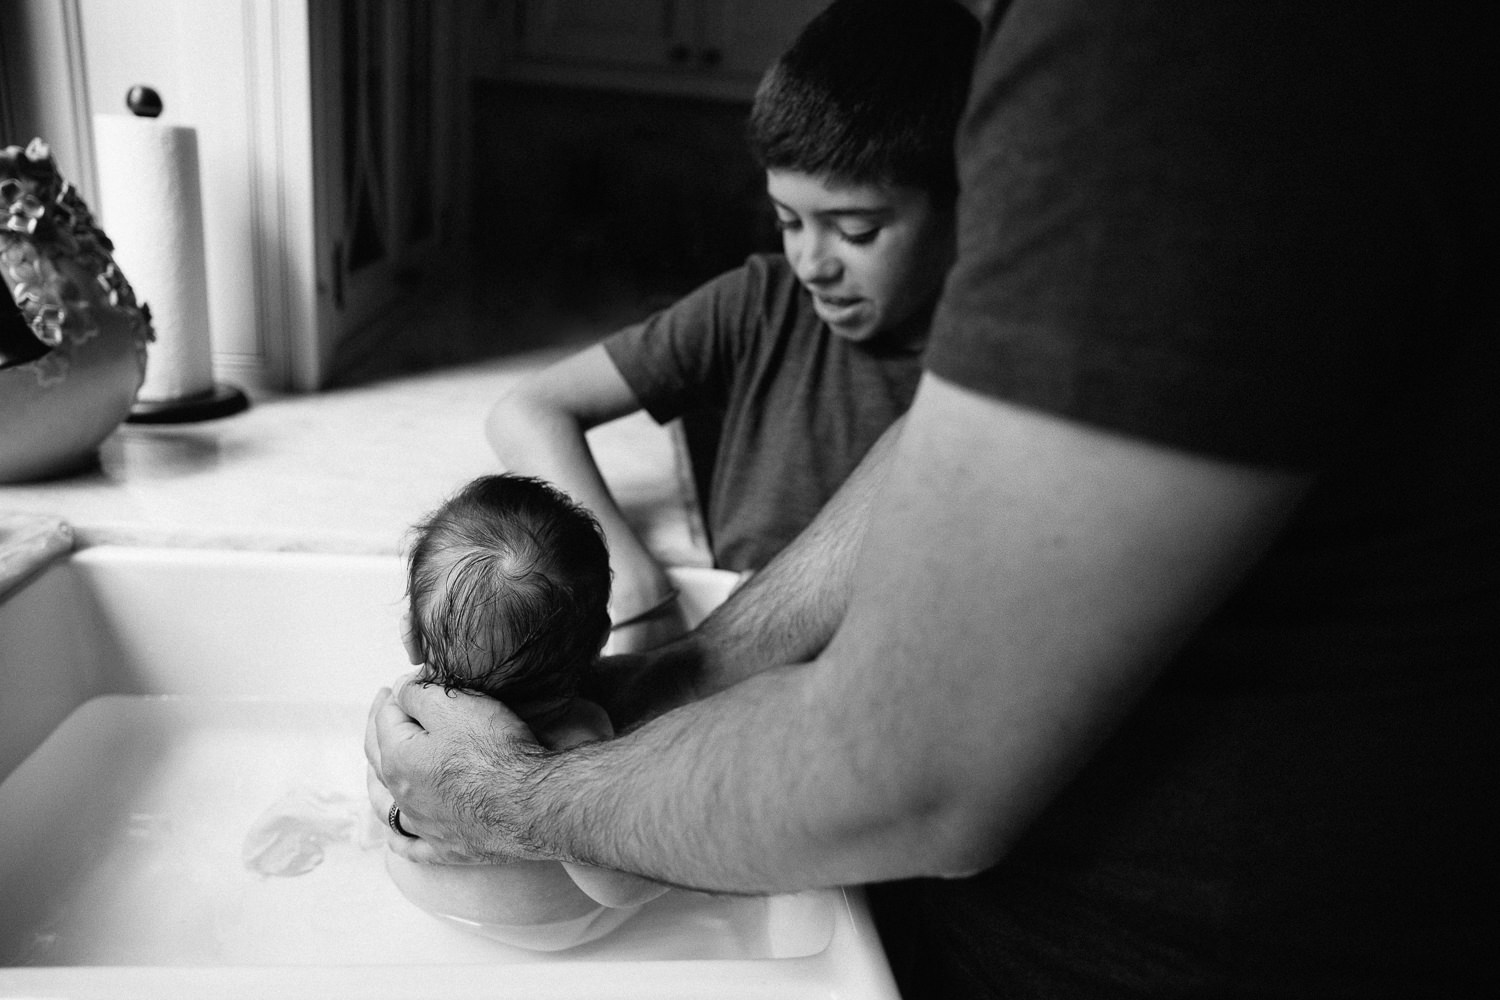 2 month old baby girl with lots of dark brown hair in kitchen sink getting a bath from dad and 9 year old big brother - Barrie In-Home Photography